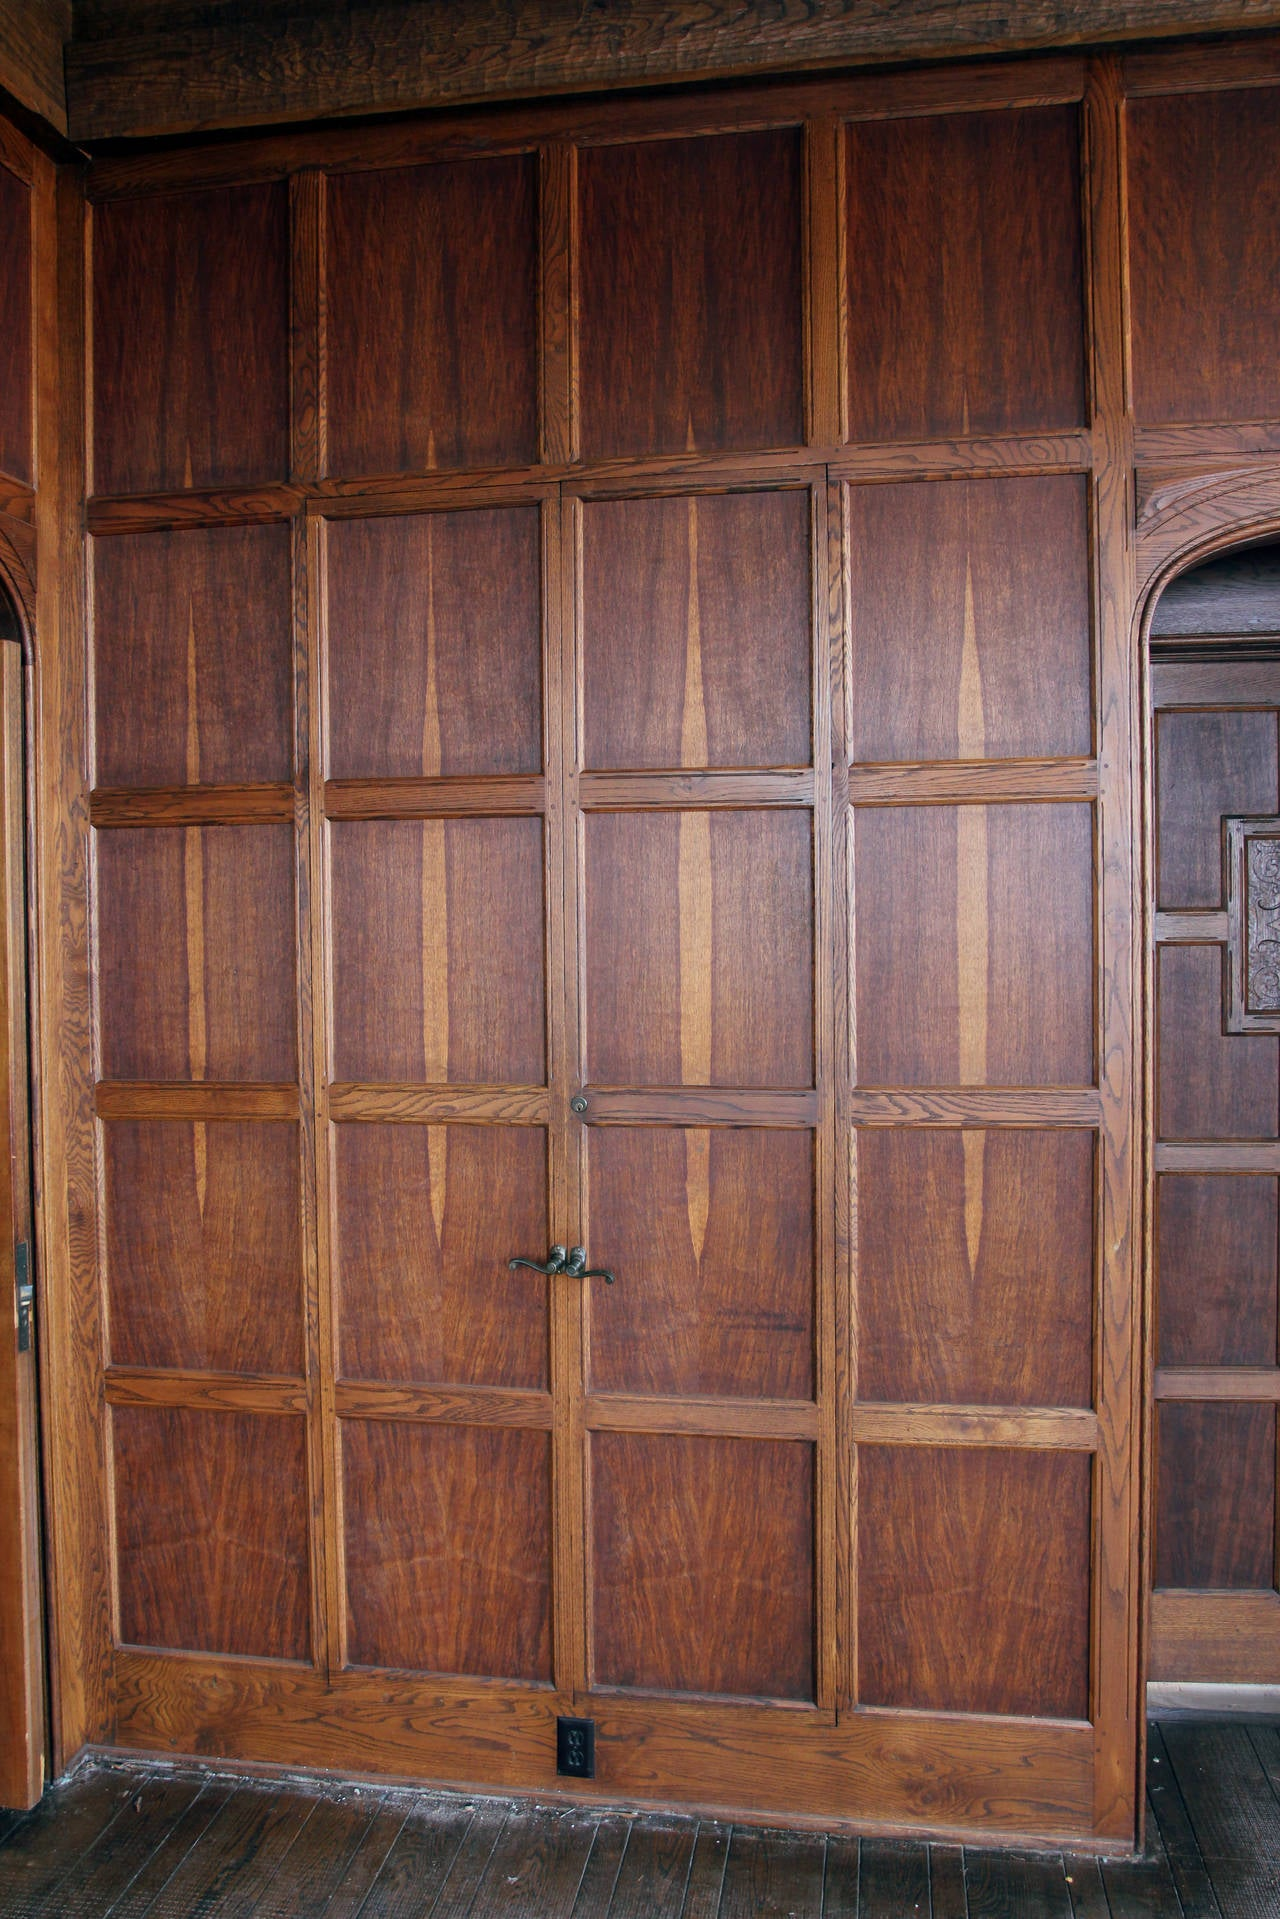 1905 tudor style english oak paneled room from two rivers